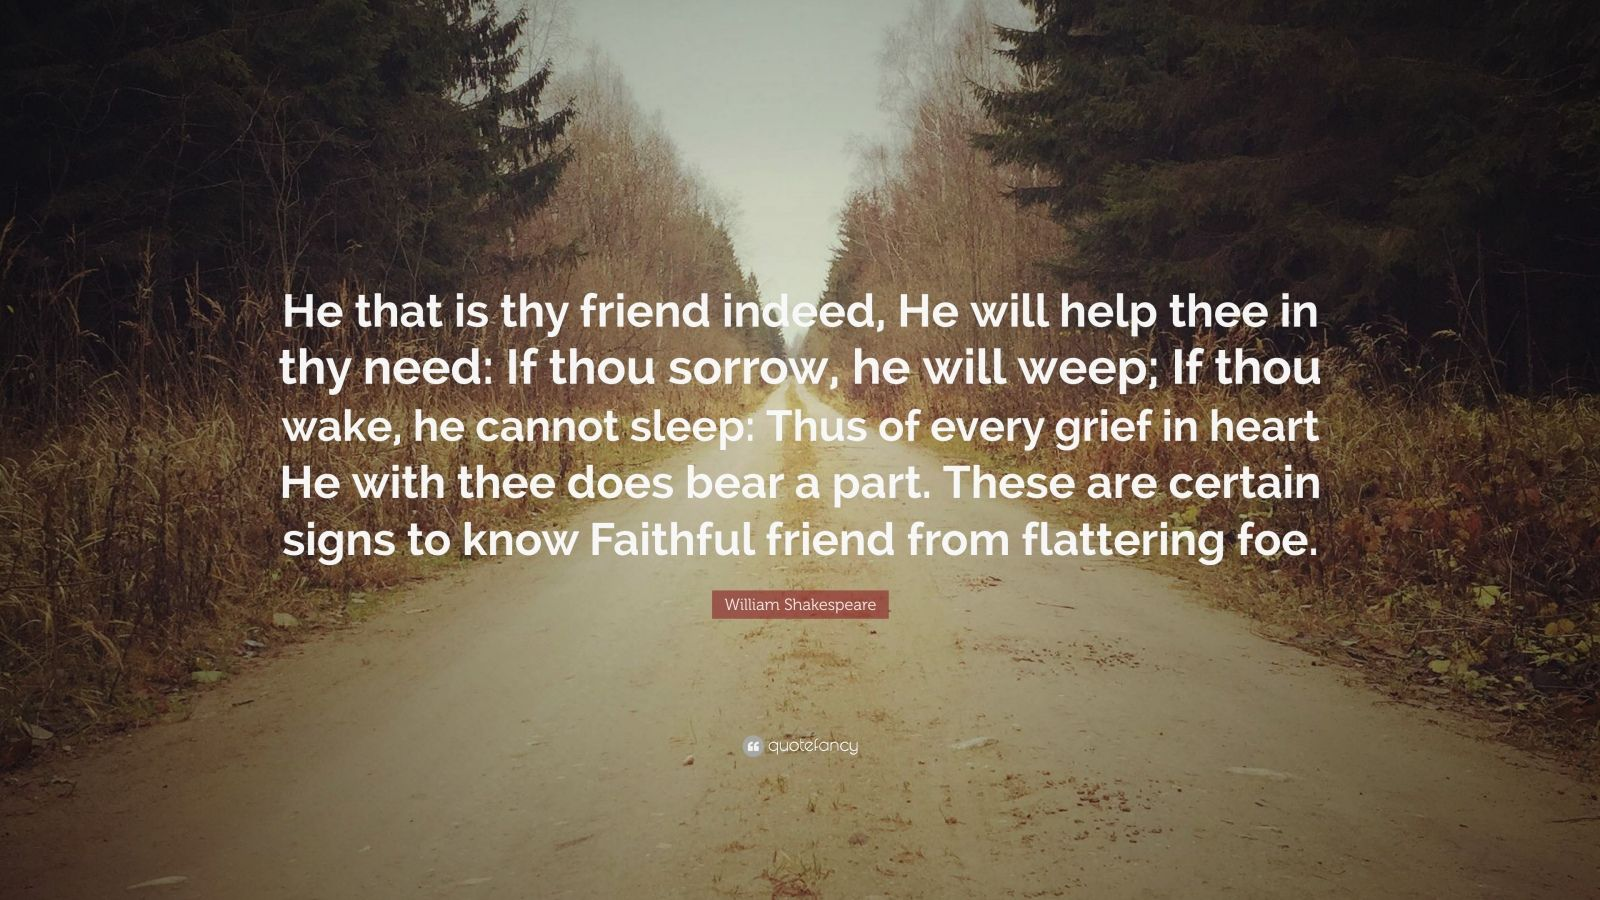 """William Shakespeare Quote: """"He that is thy friend indeed, He will help thee in thy need: If thou sorrow, he will weep; If thou wake, he cannot sleep: Thus of every grief in heart He with thee does bear a part. These are certain signs to know Faithful friend from flattering foe."""""""